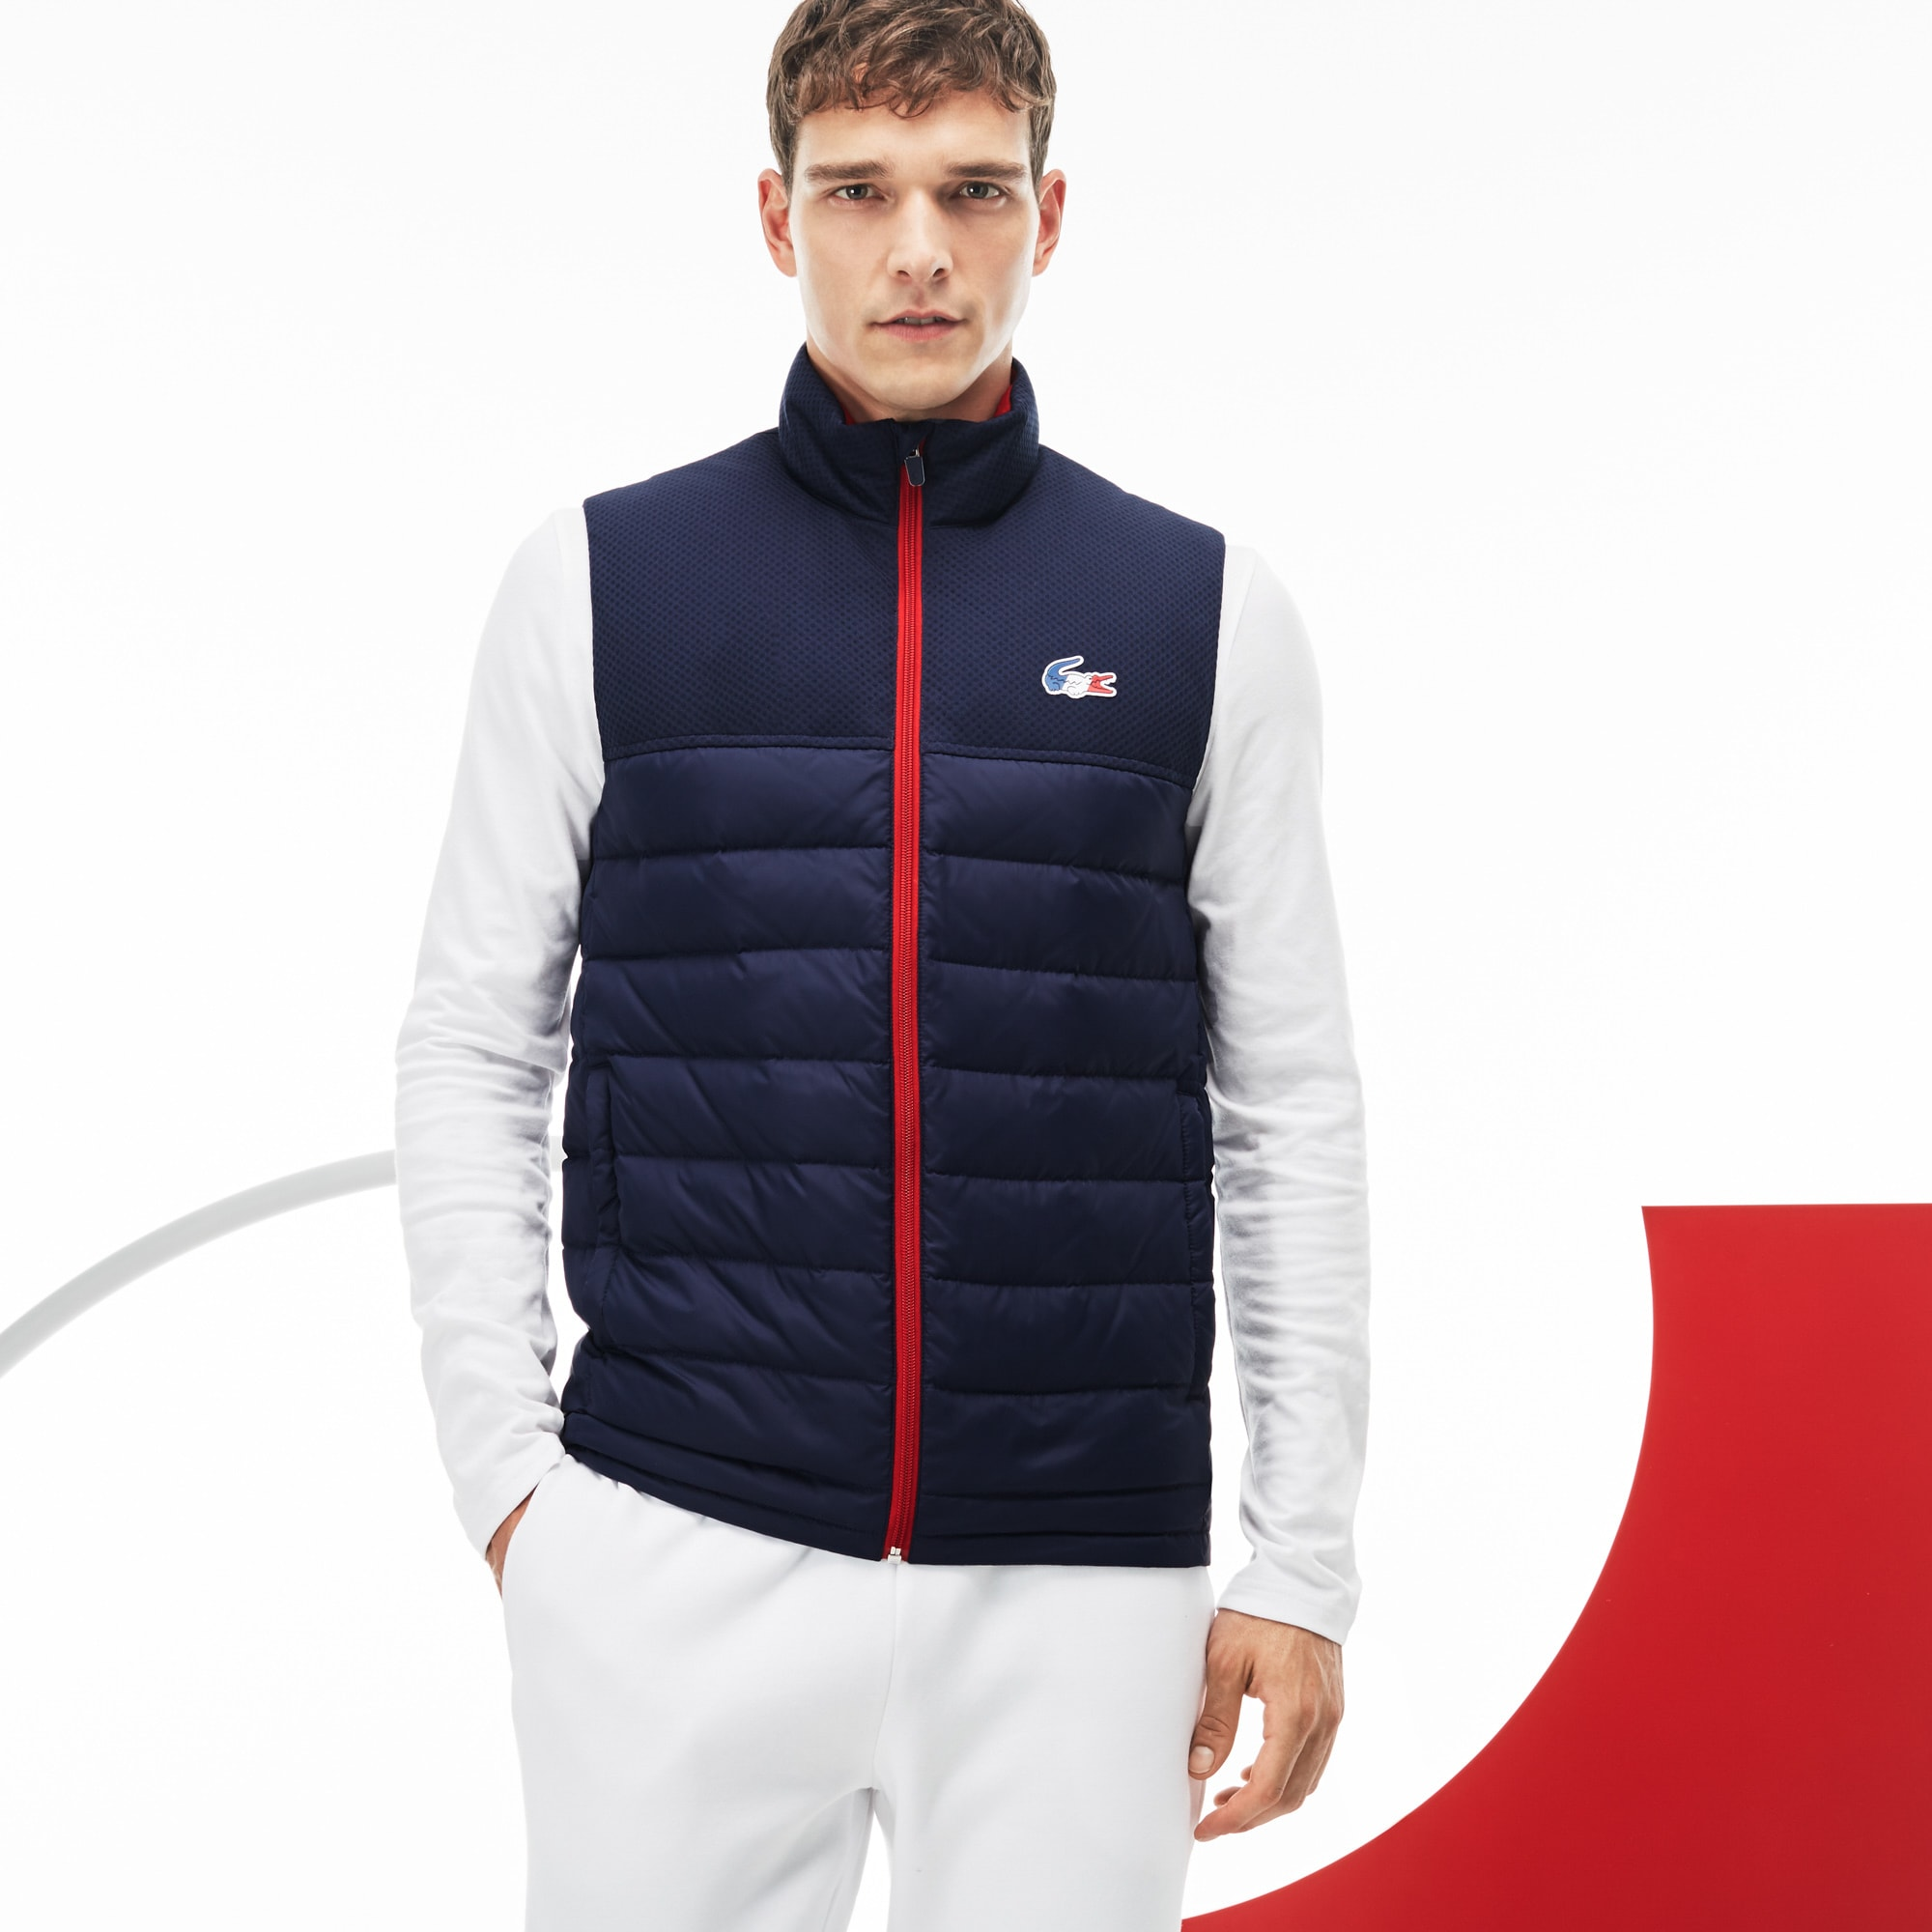 Men's Lacoste FRENCH SPORTING SPIRIT Edition Vest